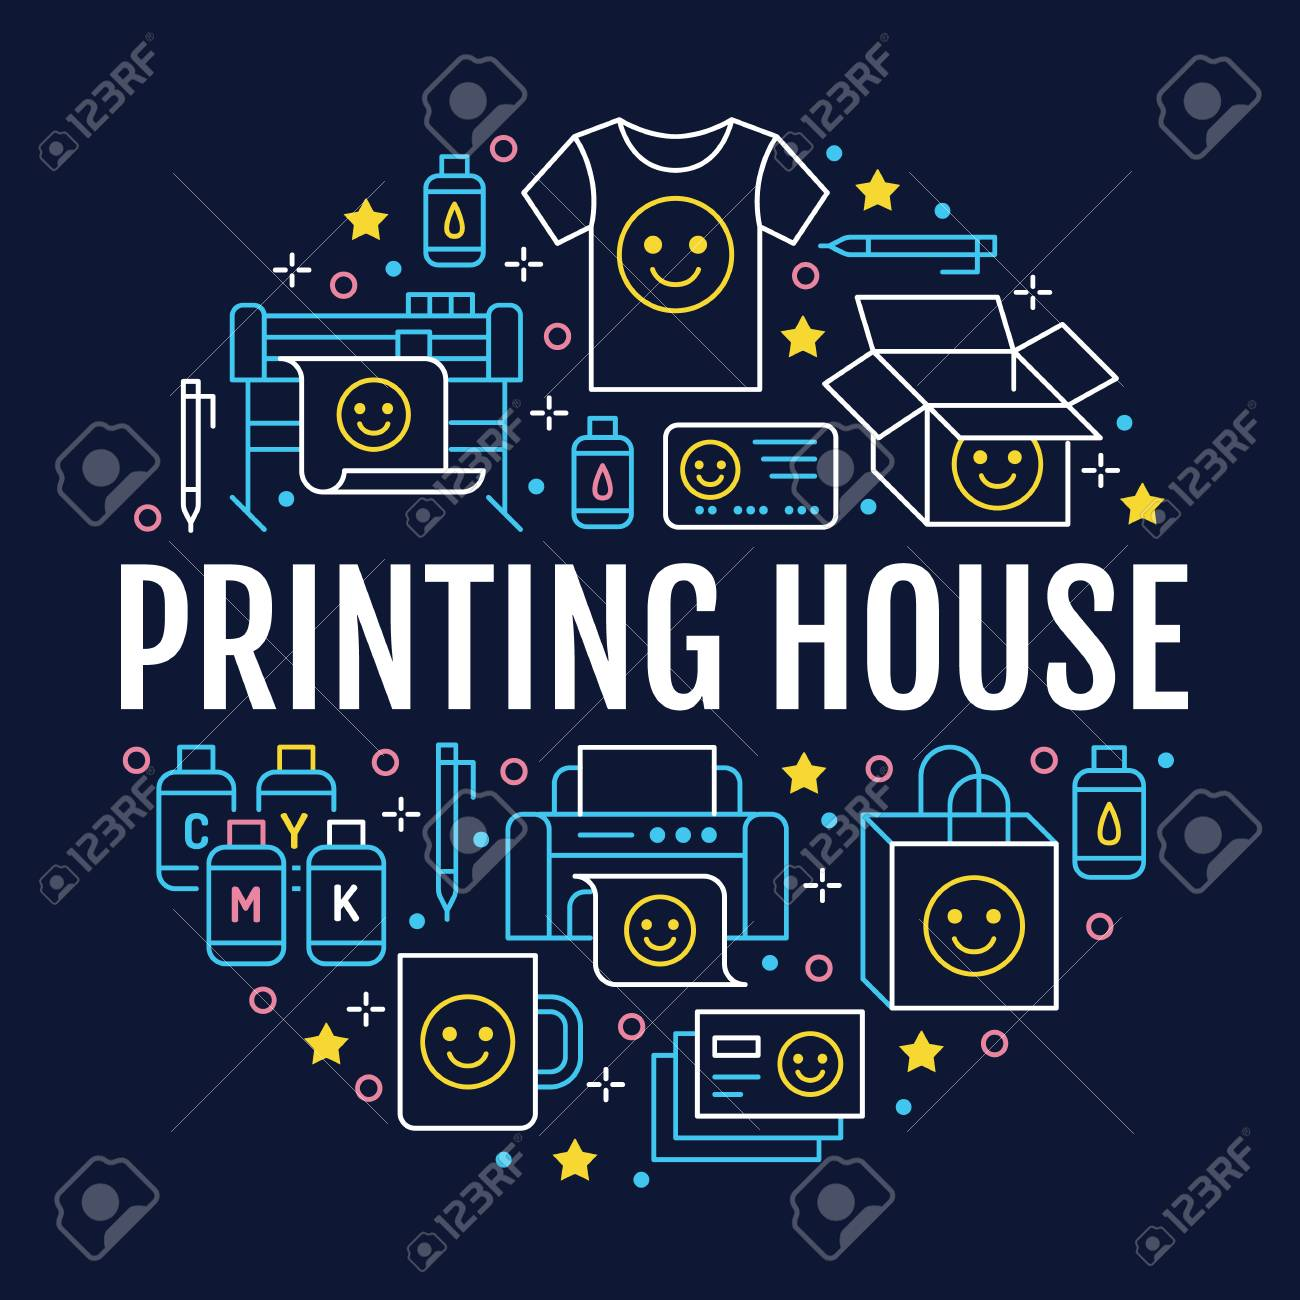 Printing house circle poster with flat line icons. Print shop equipment - printer, scanner, offset machine, plotter, brochure, cmyk, rubber stamp. Polygraphy office signs, typography. - 105973976